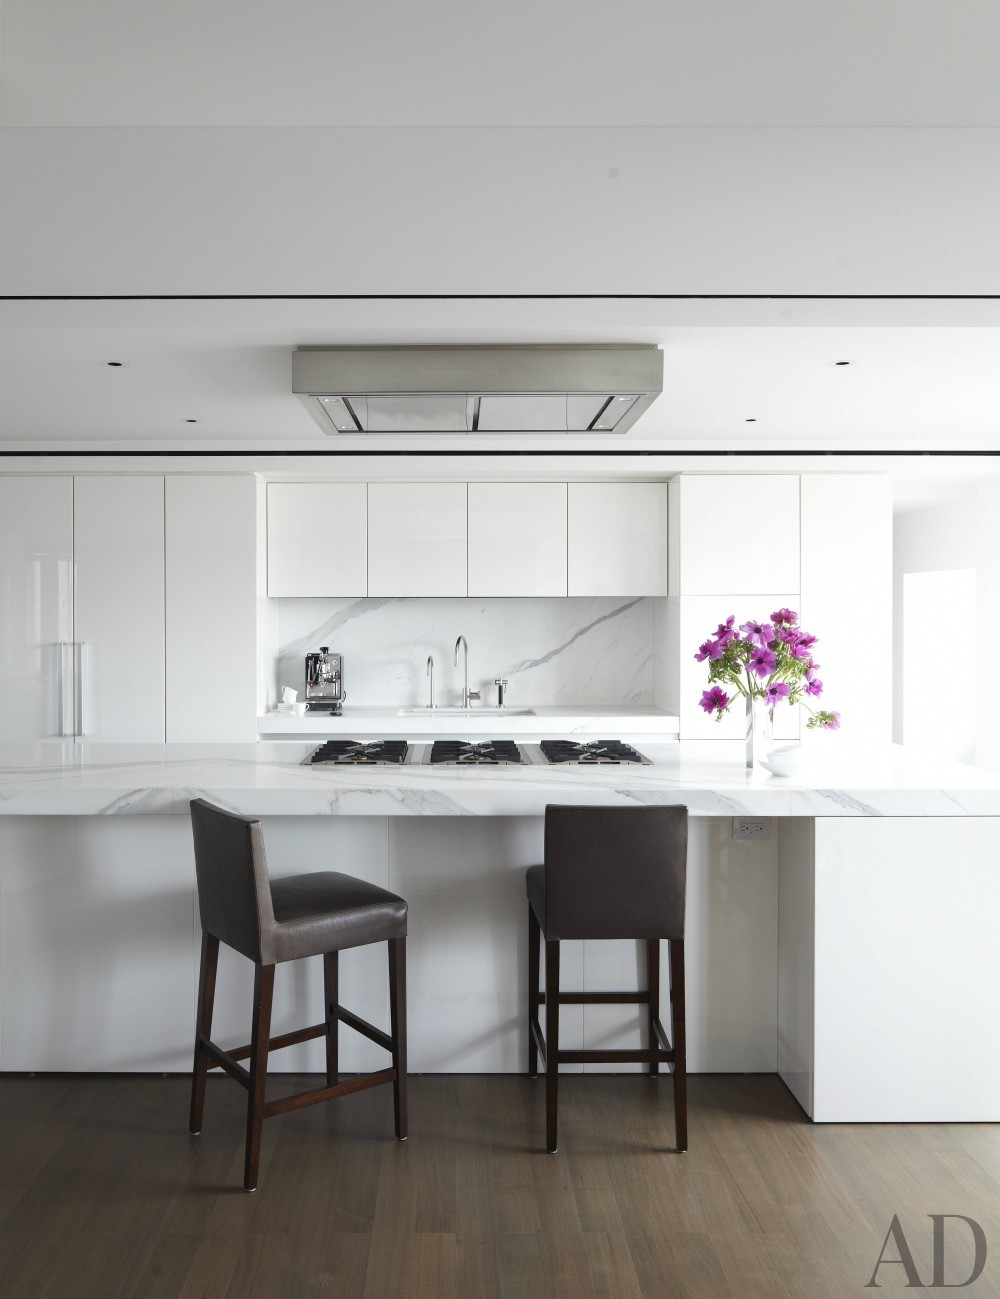 Contemporary Kitchen by S. Russell Groves and S. Russell Groves in New York, New York